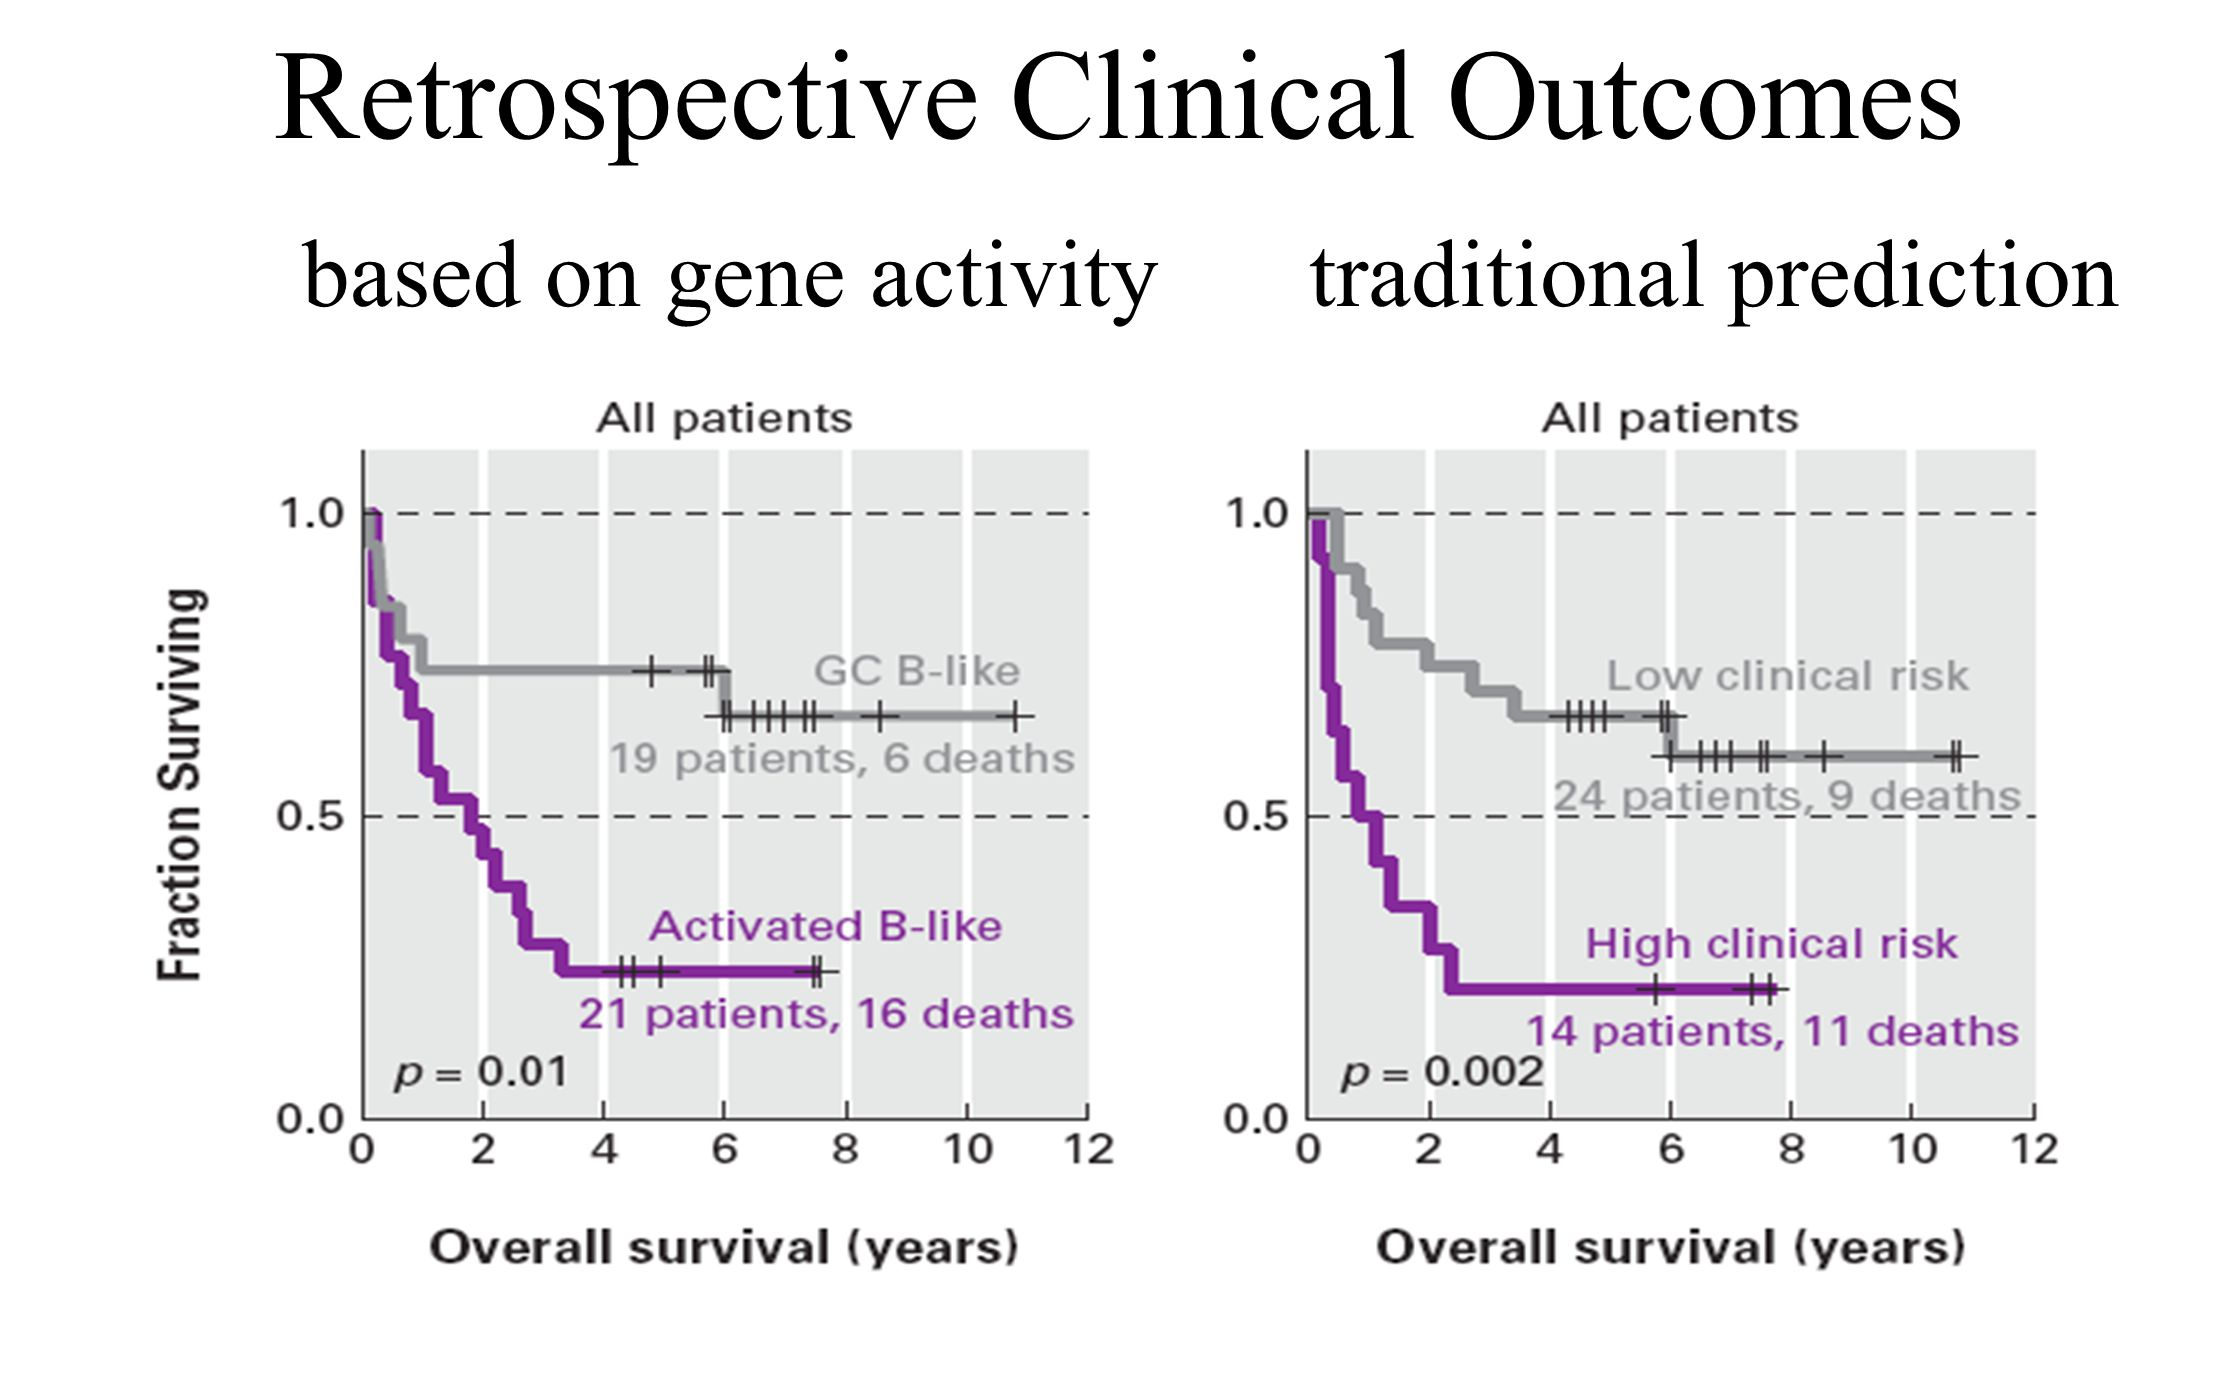 Retrospective Clinical Outcomes based on gene activity